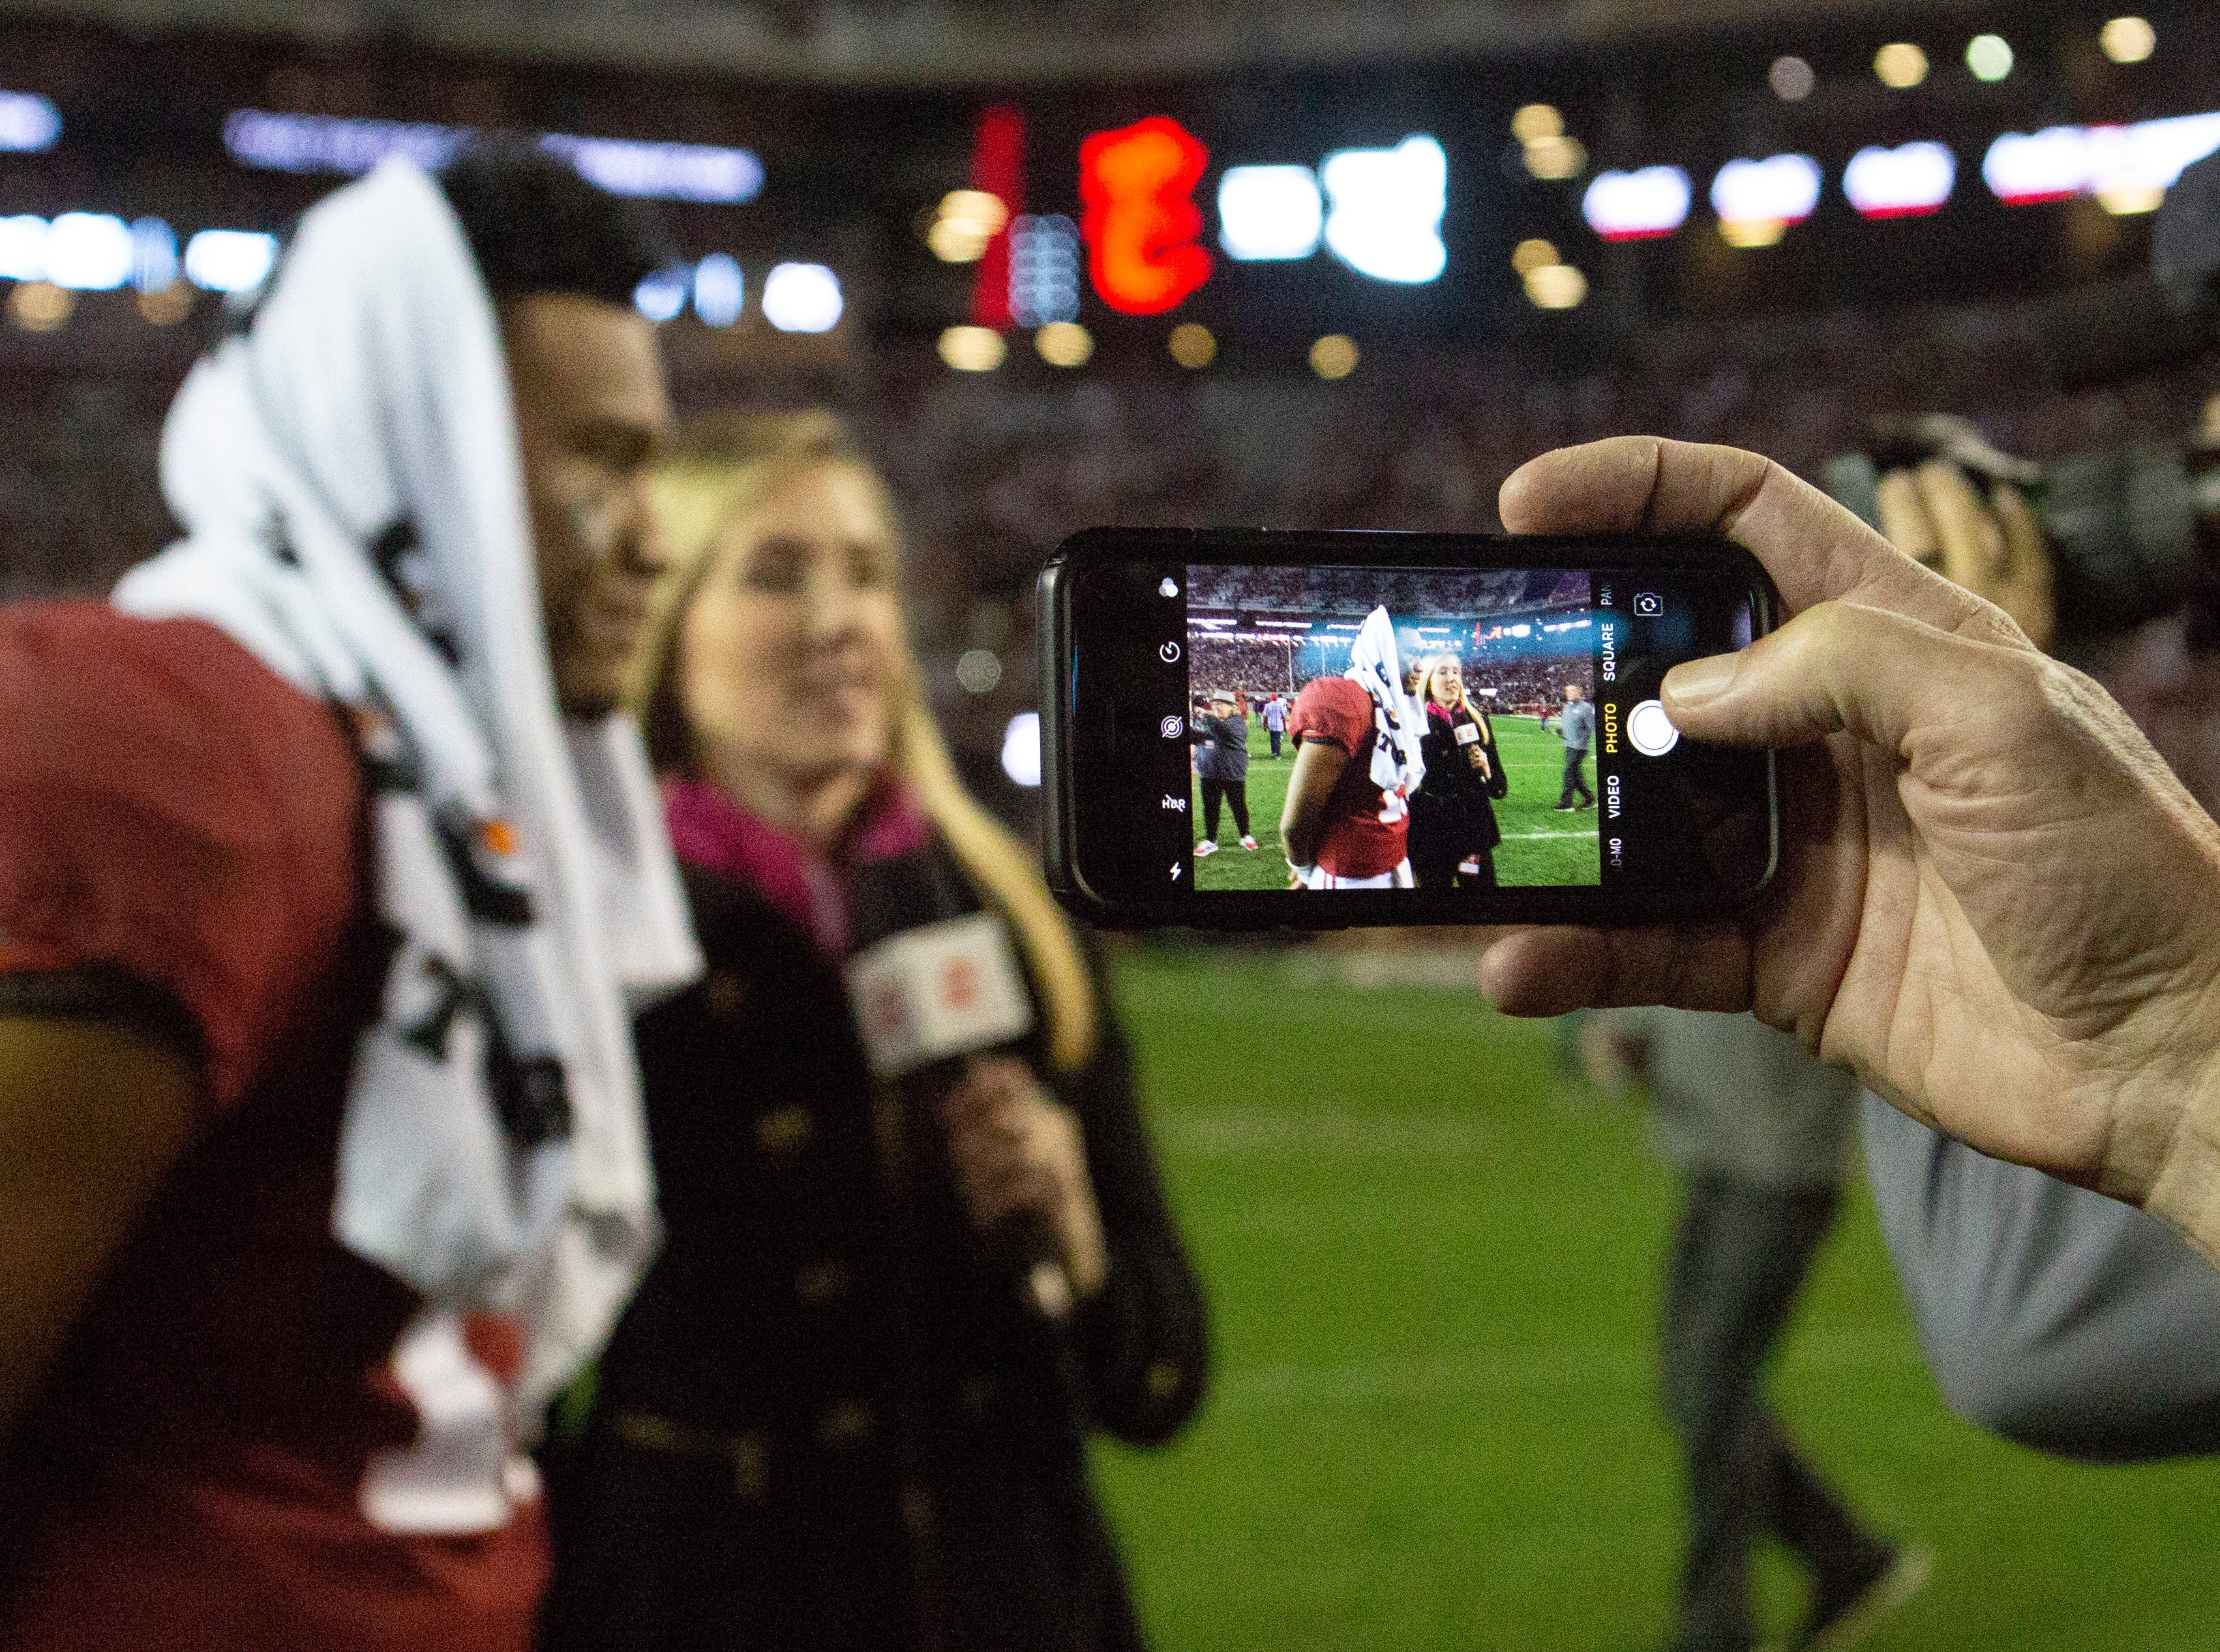 Alabama's Tua Tagovailoa does an interview after the Crimson Tide defeated the Auburn Tigers in the Iron Bowl.